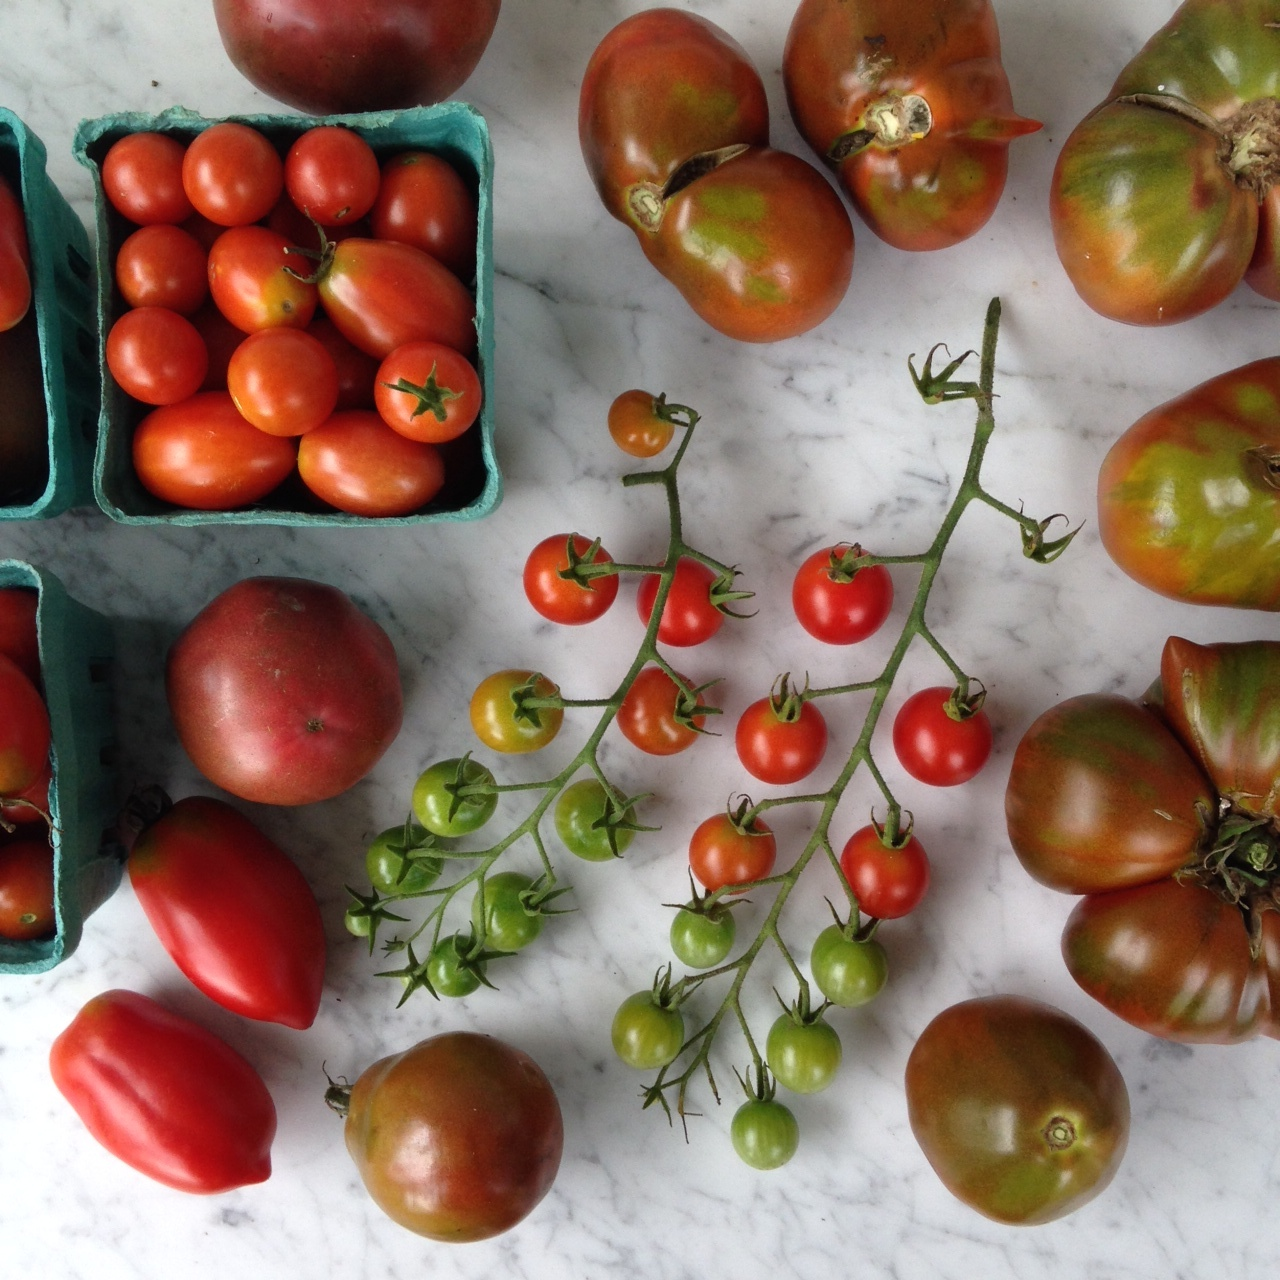 This week in the garden – end of August: tomatoes and sunflowers